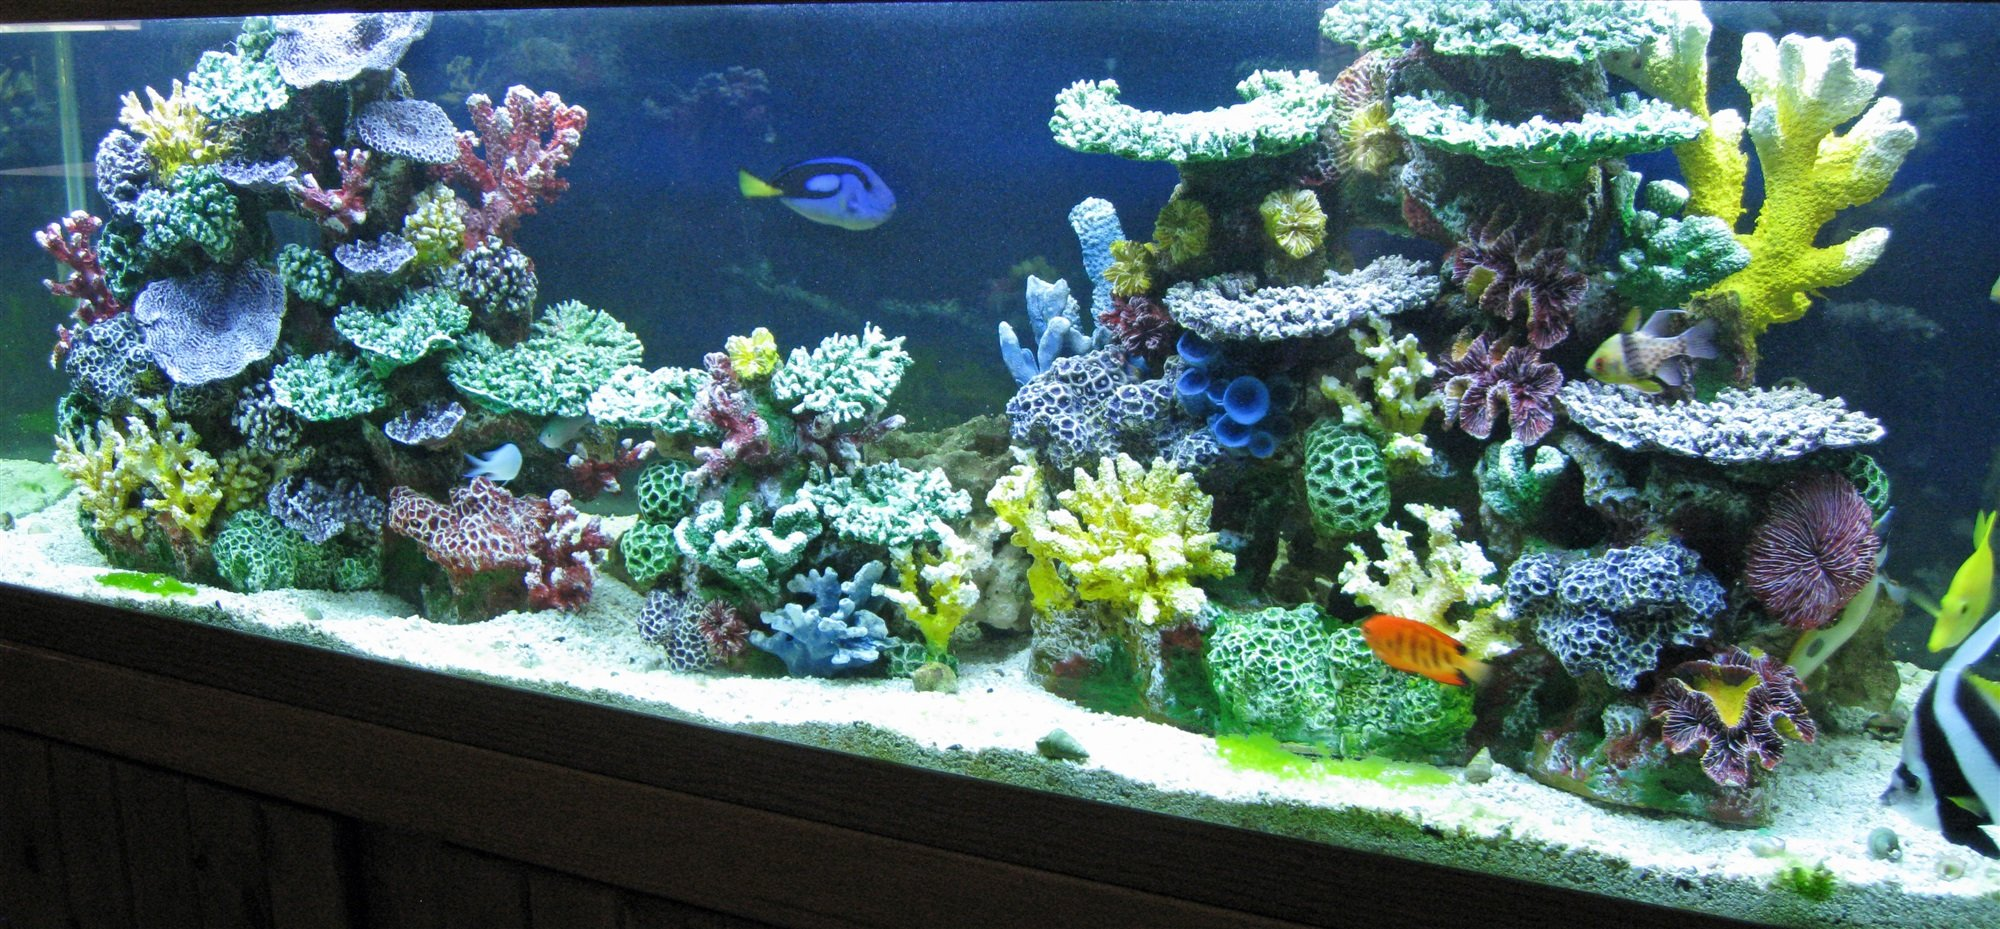 Instant Reef DM058 Artificial Coral Inserts Decor, Fake Coral Reef Decorations for Colorful Freshwater Fish Aquariums, Marine and Saltwater Fish Tanks 3